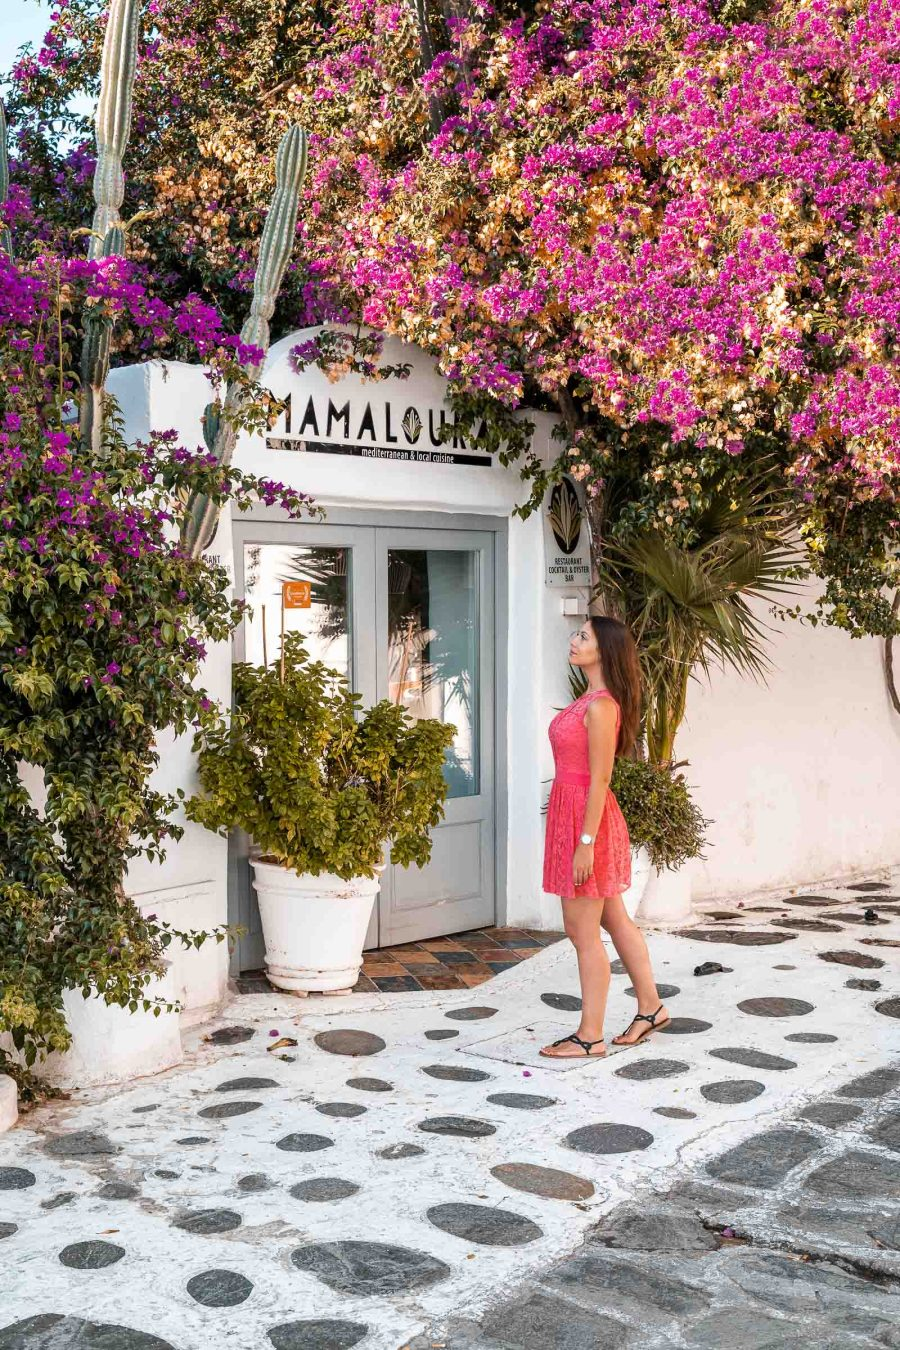 Girl in a pink dress standing in front of Mamalouka Restaurant in Mykonos